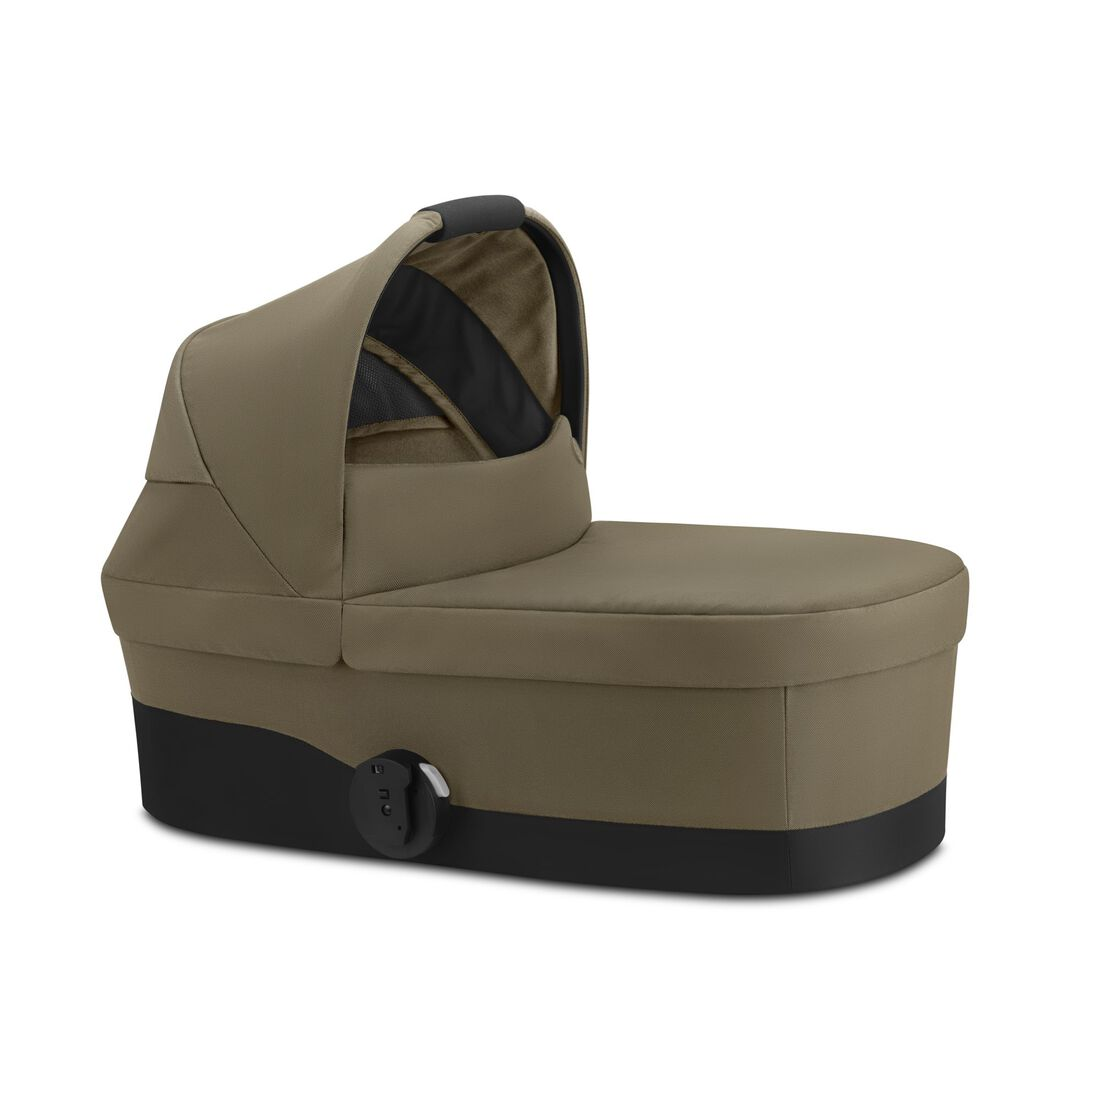 CYBEX Cot S - Classic Beige in Classic Beige large image number 1